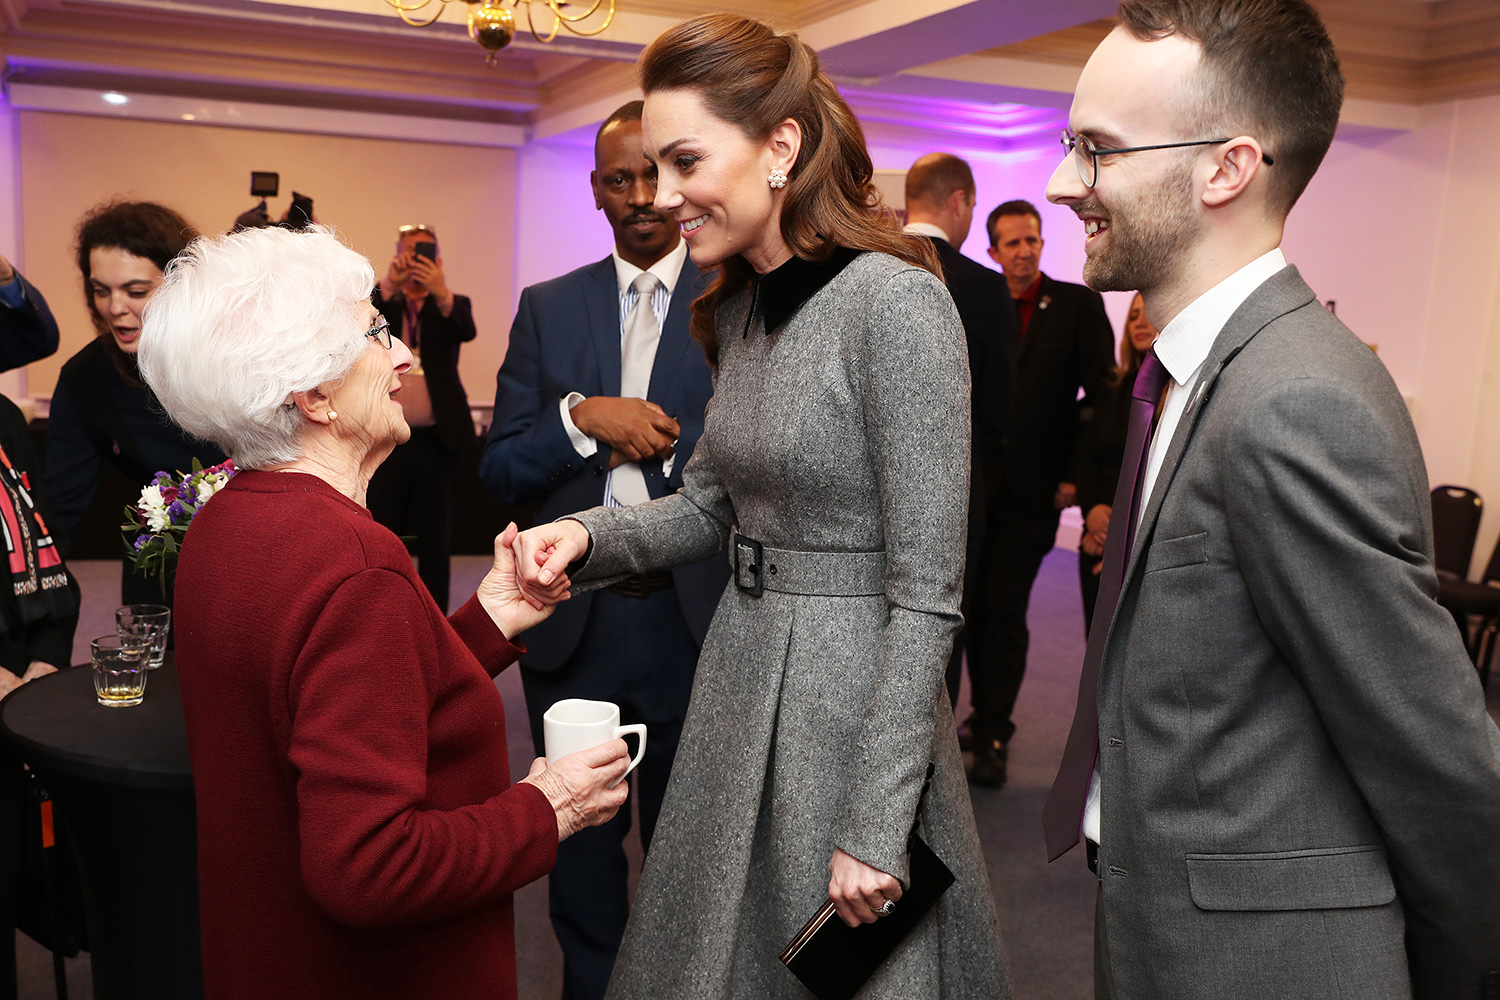 Catherine, Duchess of Cambridge shares a joke with Holocaust survivor Yvonne Bernstein after the UK Holocaust Memorial Day Commemorative Ceremony in Westminster on January 27, 2020 in London